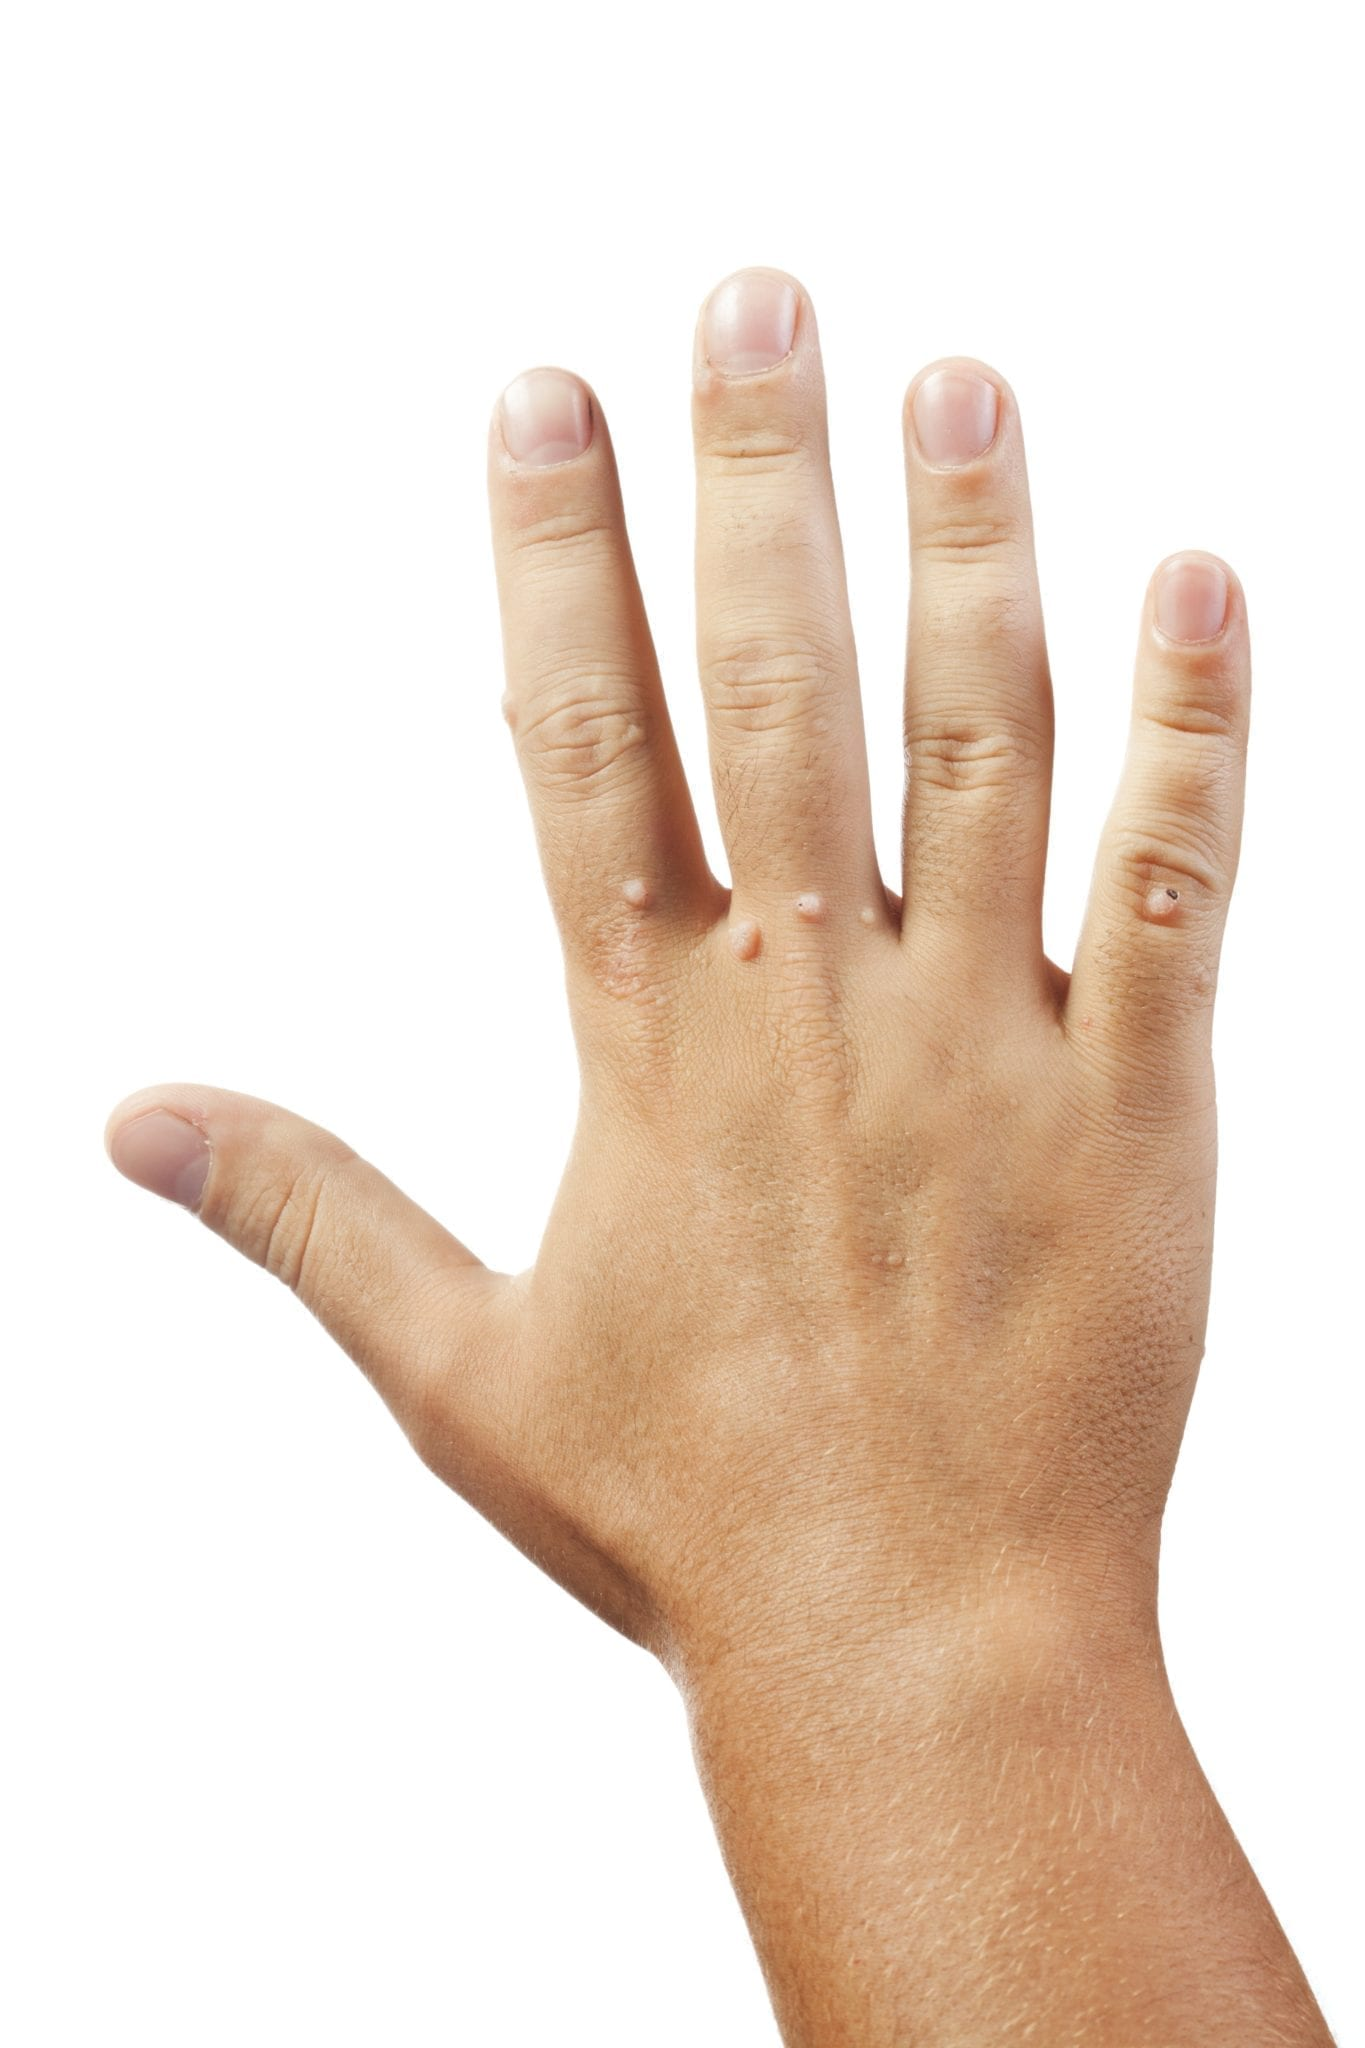 How to Get Rid of Warts Naturally